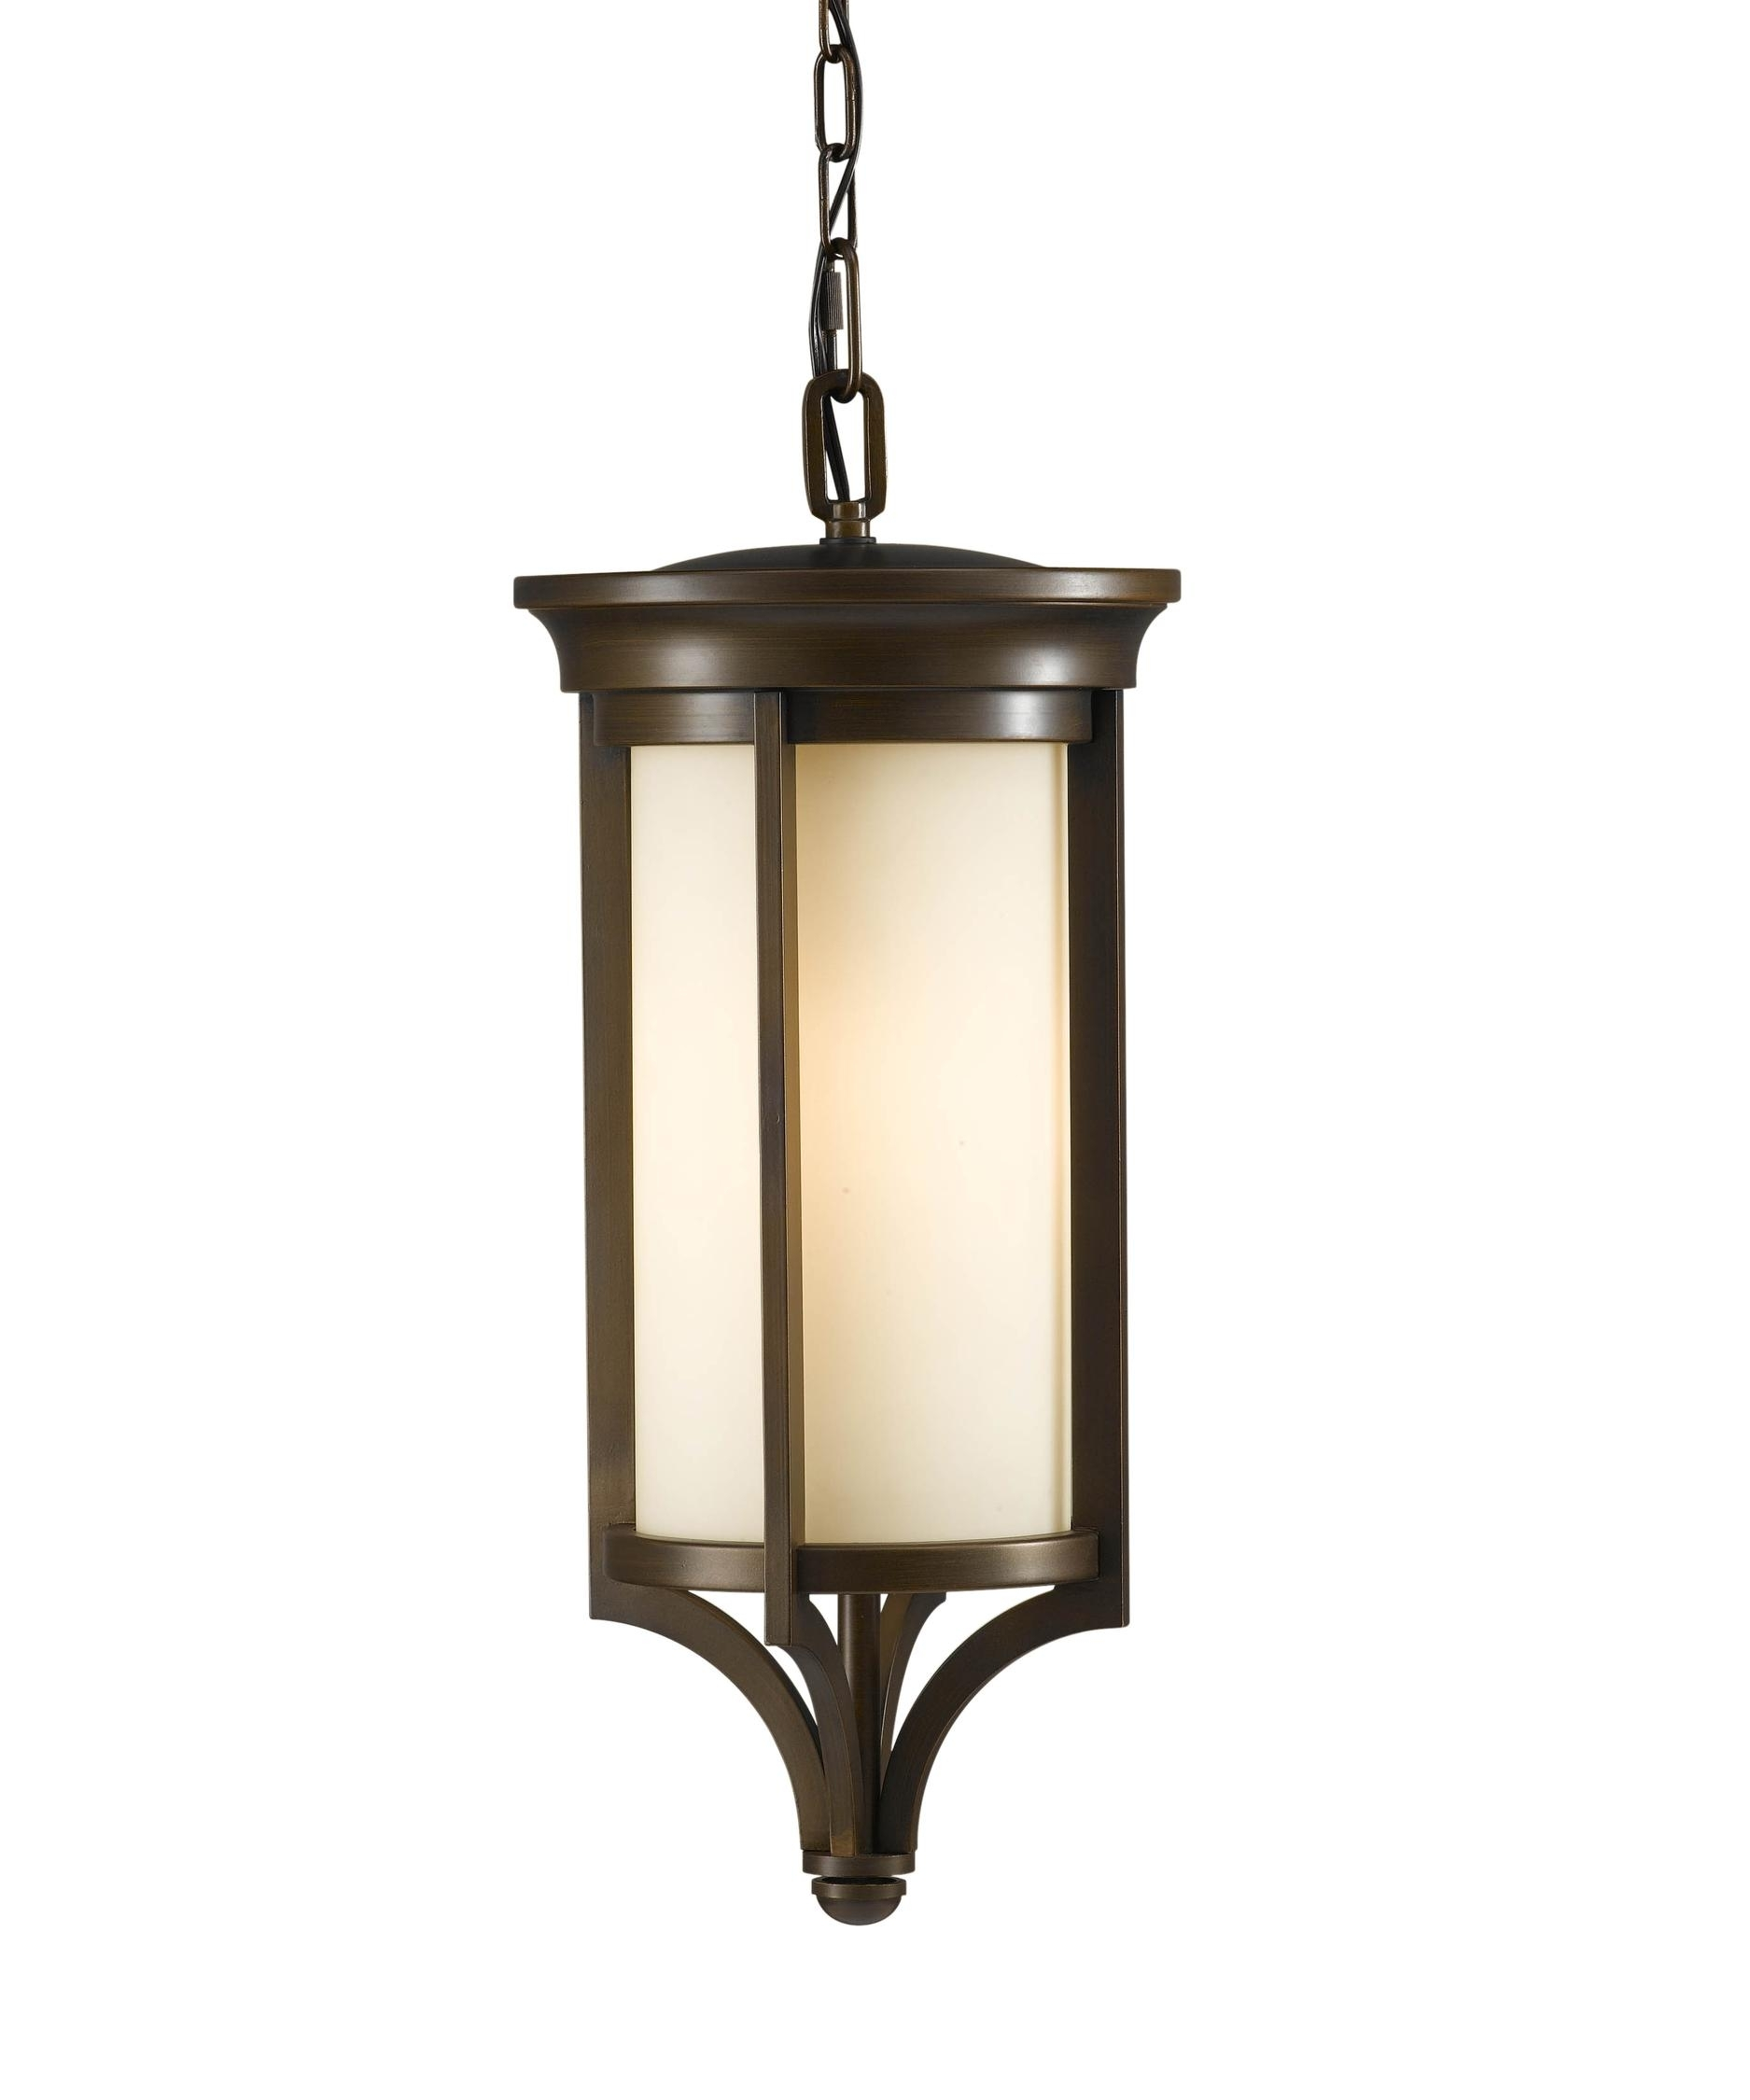 Murray Feiss Ol7511 Merrill 10 Inch Wide 1 Light Outdoor Hanging pertaining to Outdoor Hanging Electric Lanterns (Image 13 of 20)